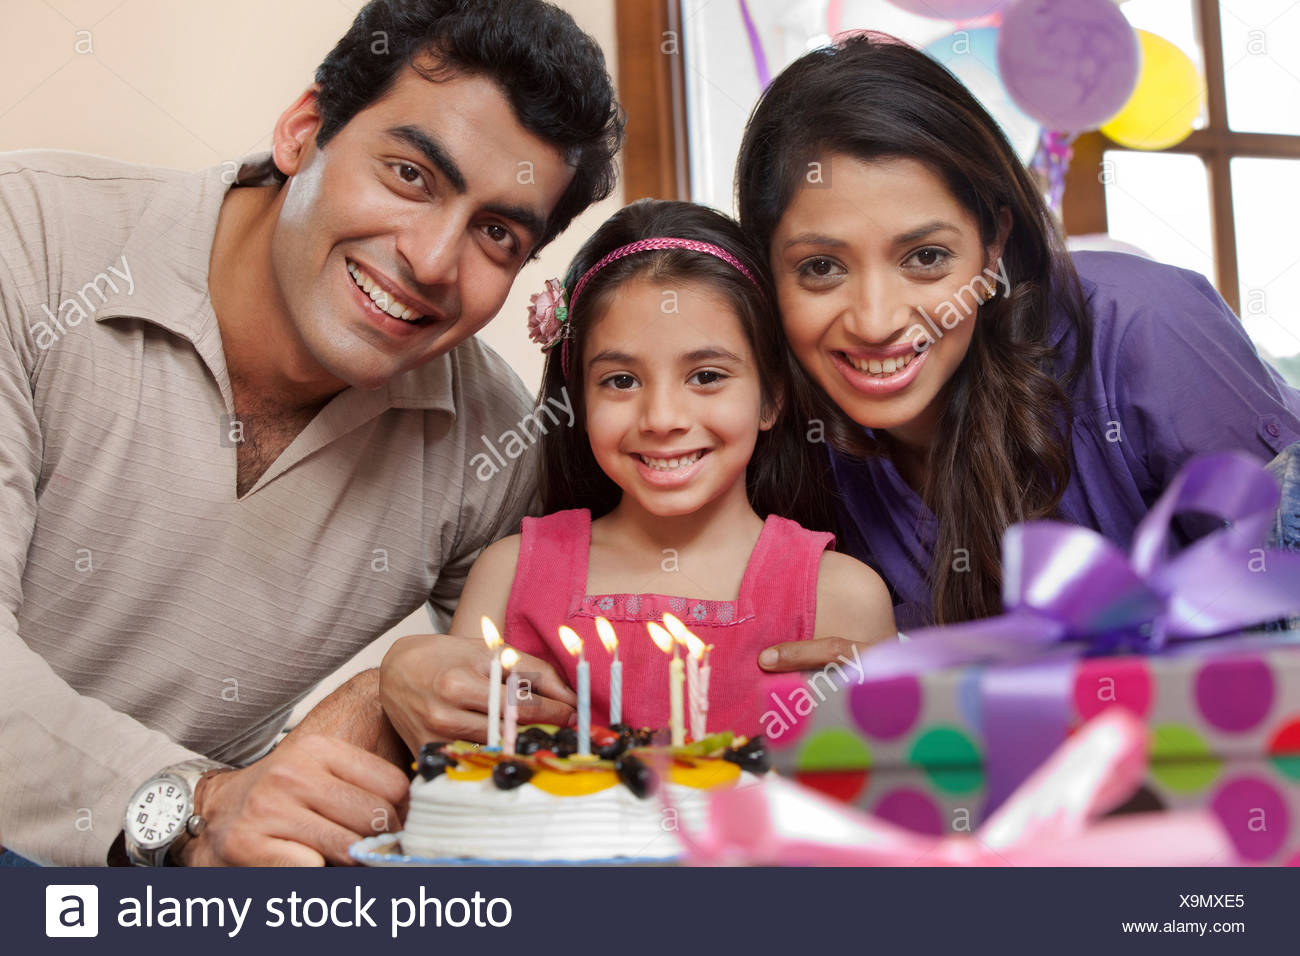 Girl celebrating her birthday with parents - Stock Image